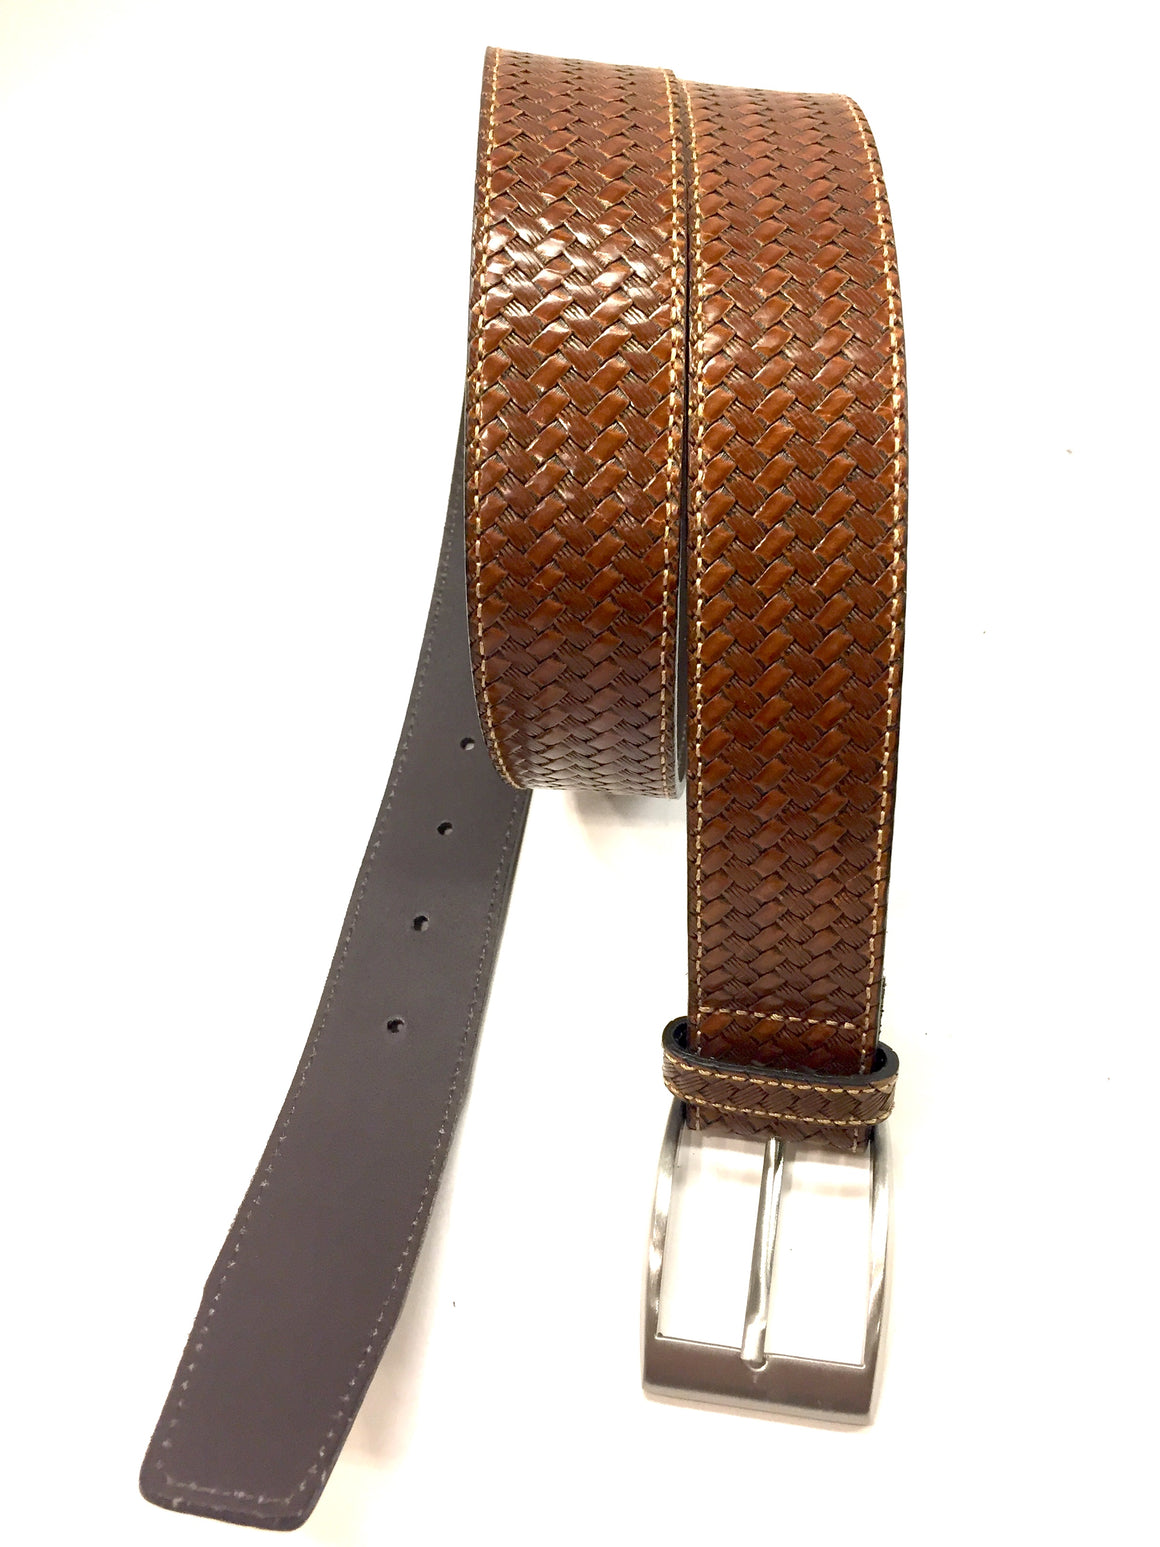 JOSEPH ABBOUD Whiskey-Brown Basketweave-Patterned Italian Leather Men's Belt Sz36